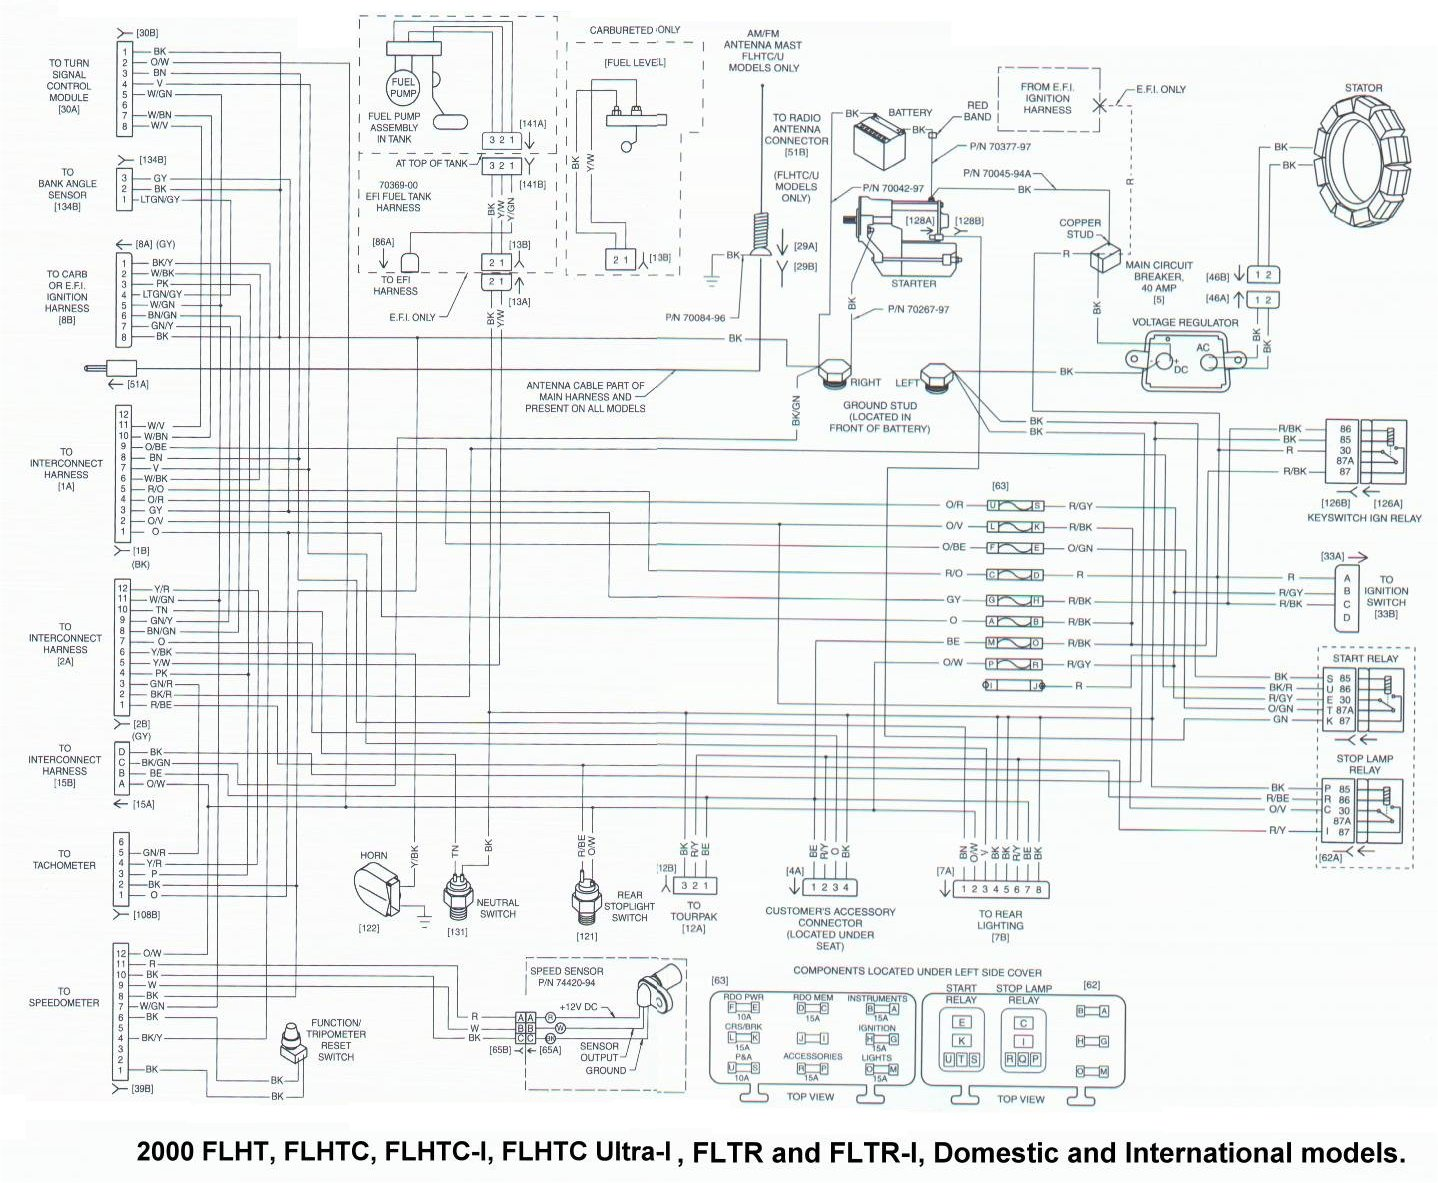 hight resolution of 2001 flhtc wiring diagram schematic wiring diagrams 2006 sportster wiring diagram 2000 harley davidson flstf wiring diagram